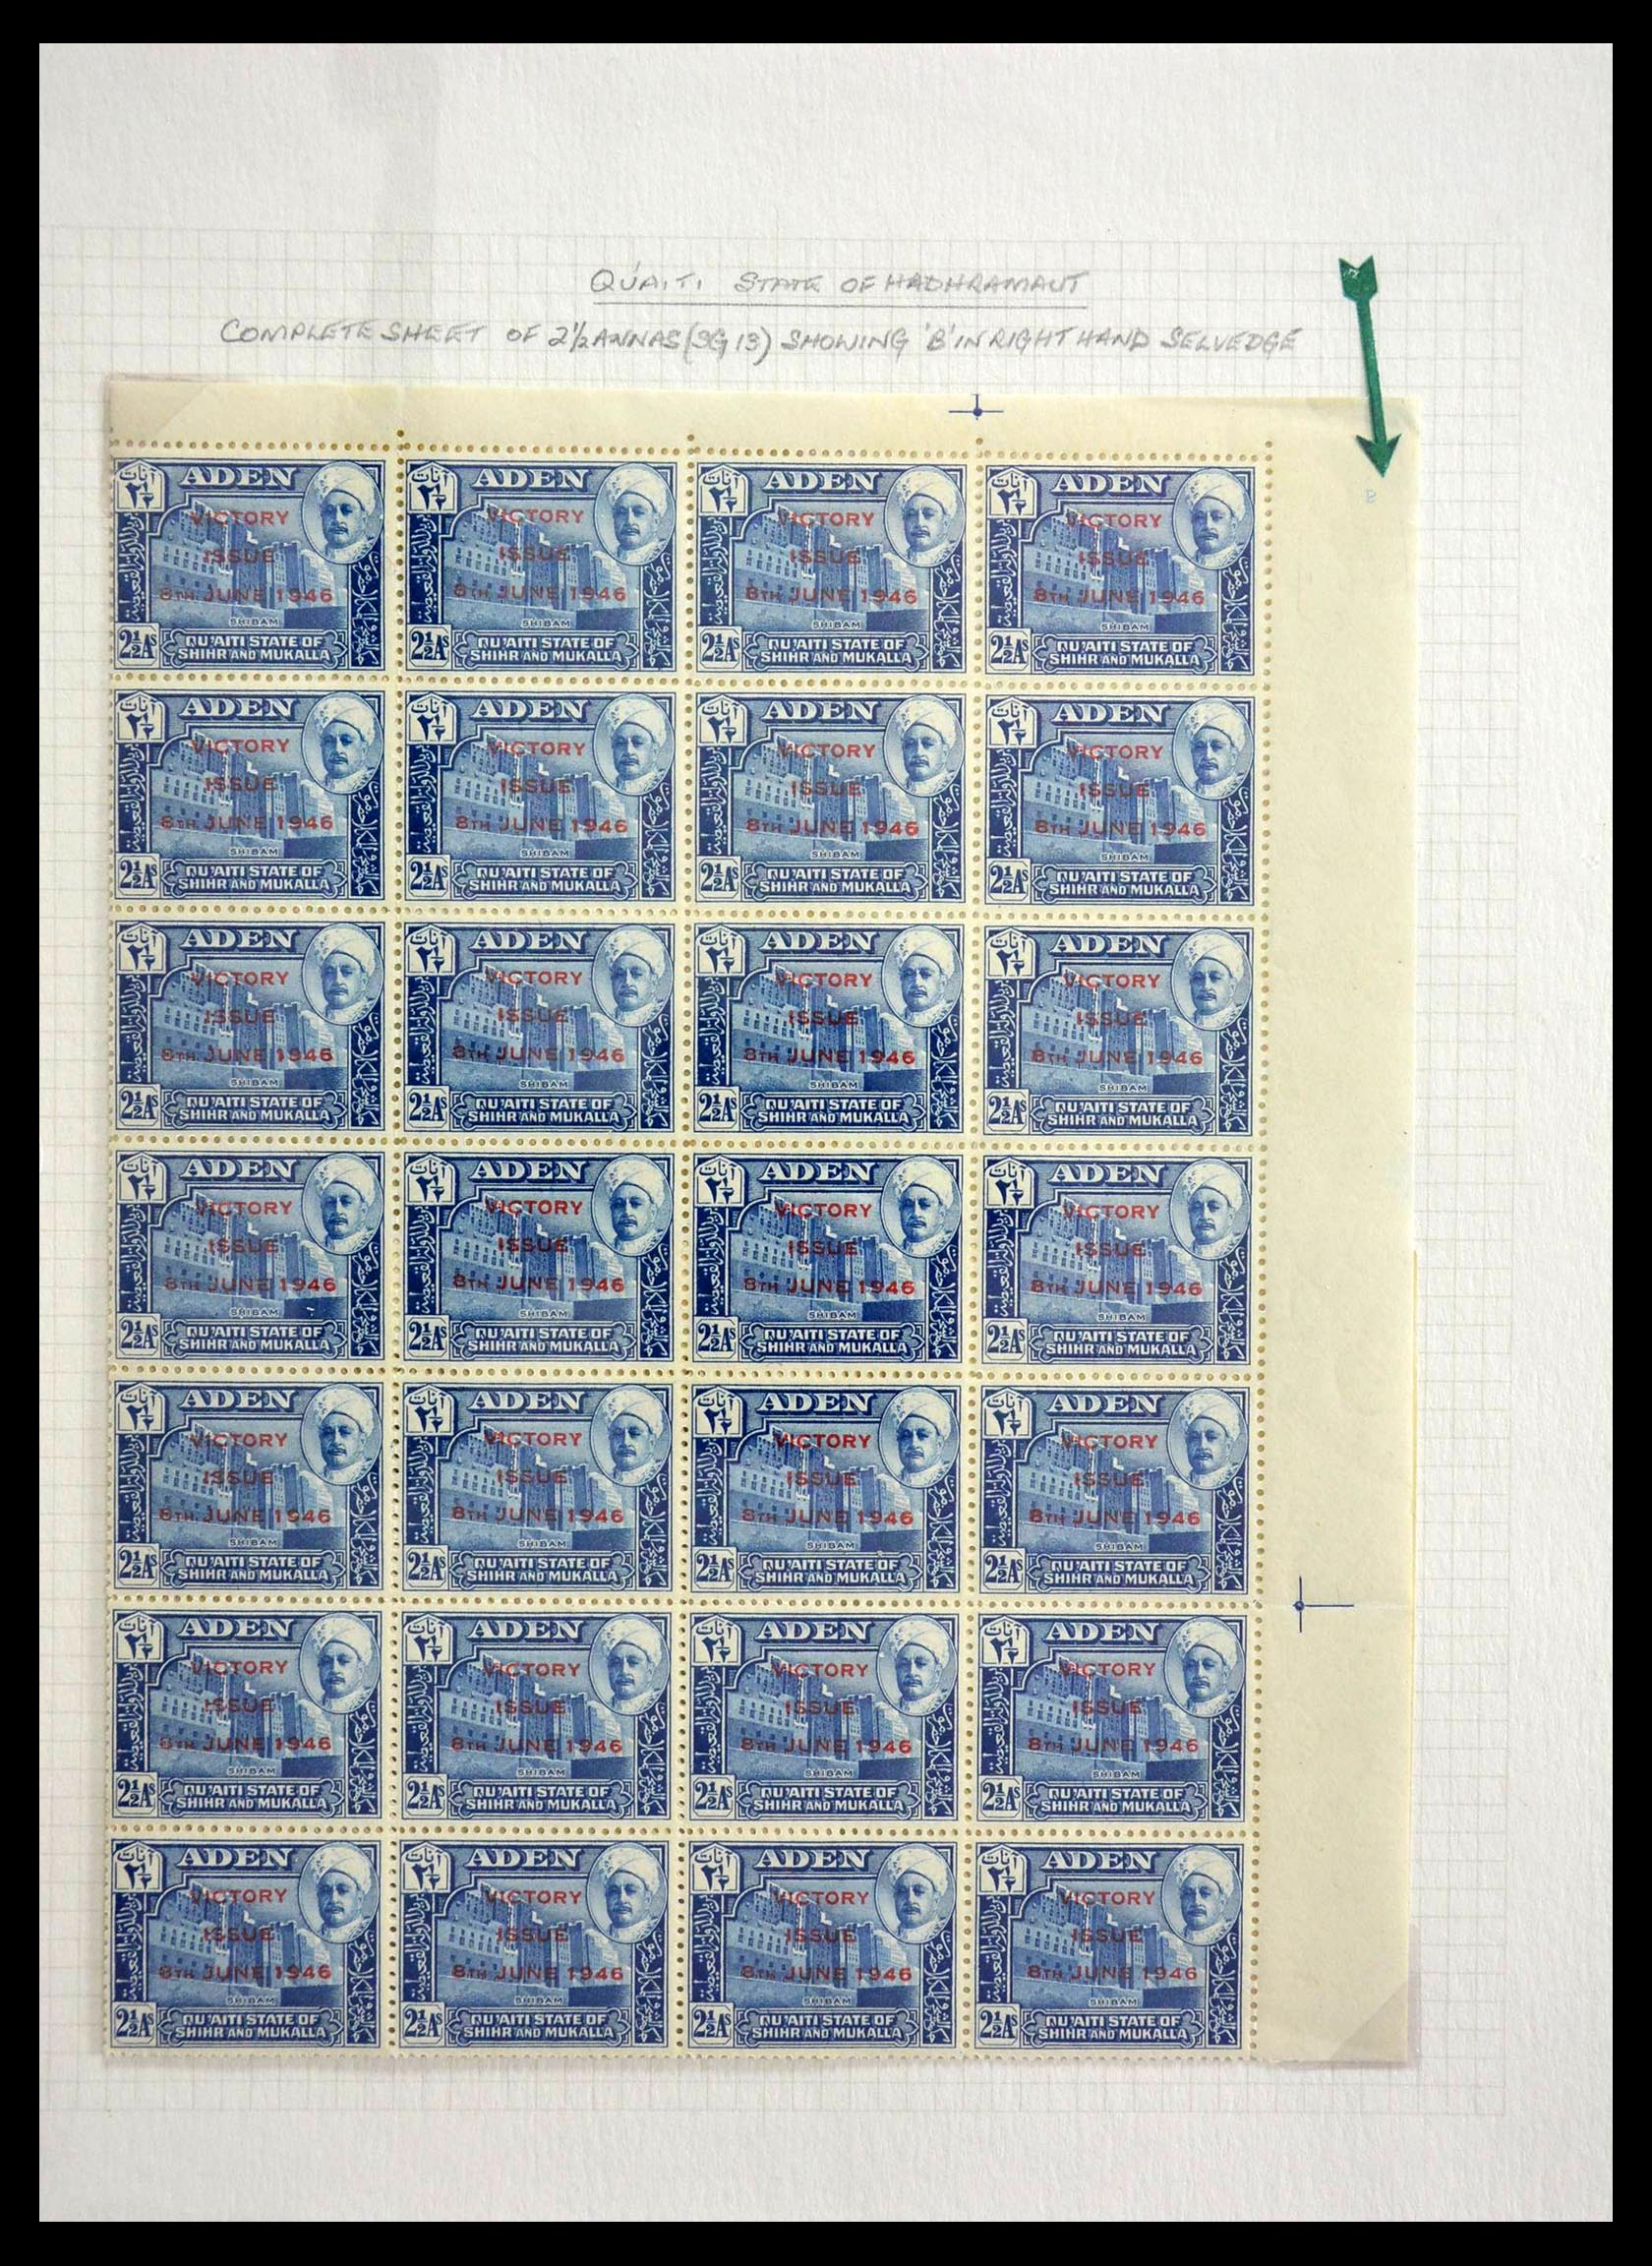 28672 010 - Stamp collection 28672 Aden Qu'aiti State 1942-1966.